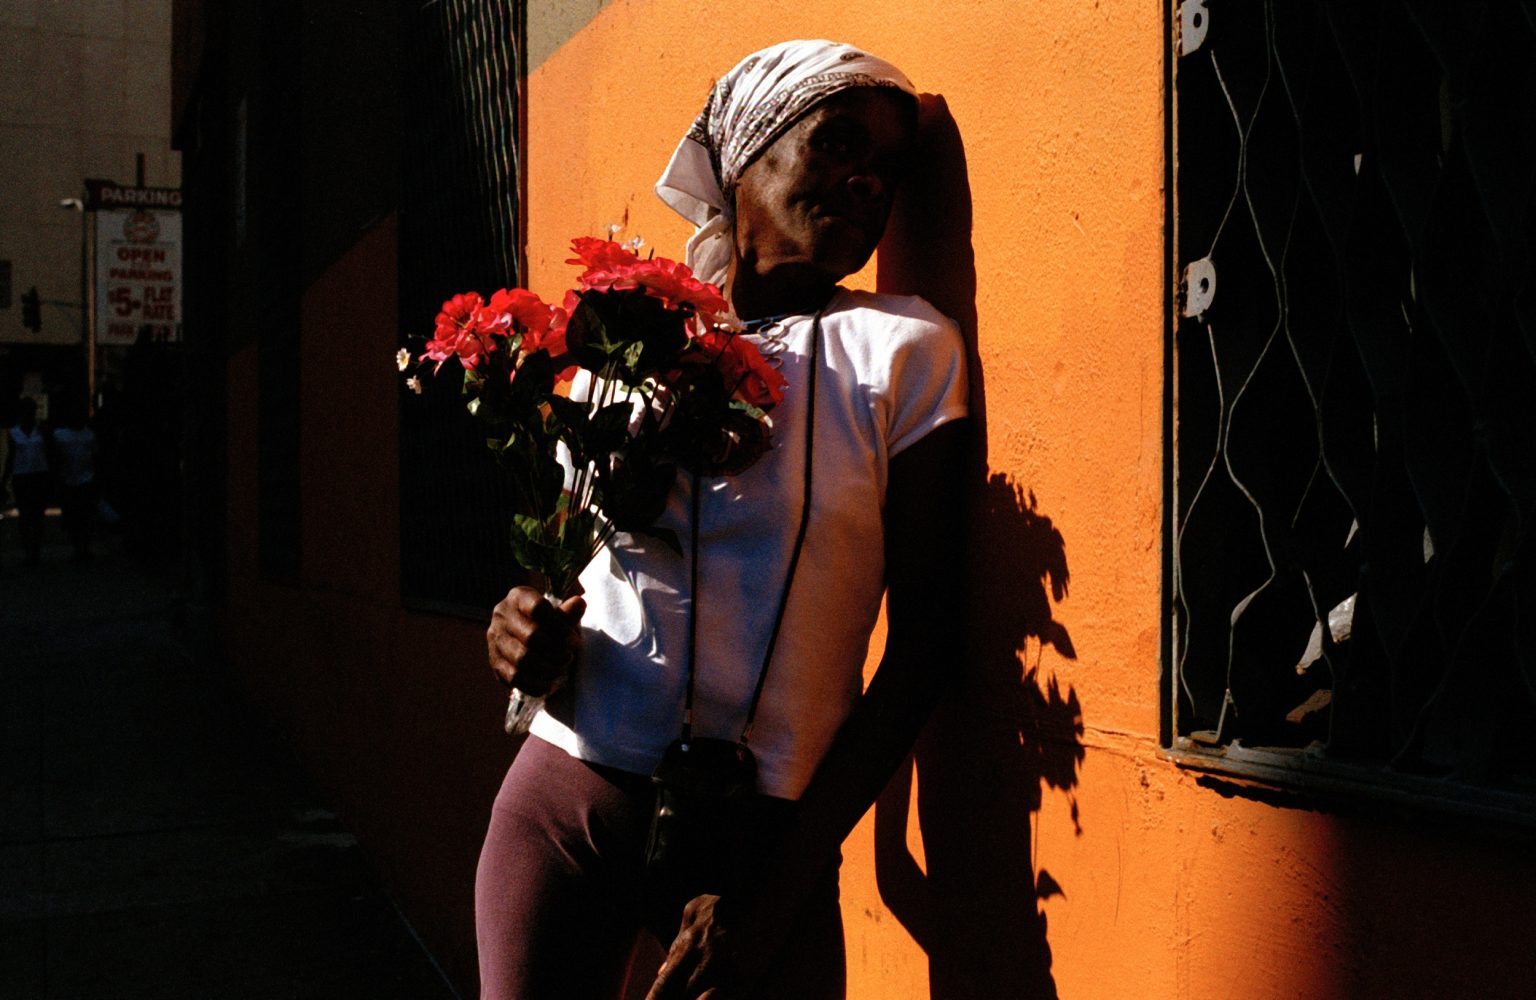 Shirley moved to L.A. with her boyfriend. He was always hitting her so she left him. She moved to Skid Row and started to prostitute herself to make a living.Los Angeles, United States 2004-2005